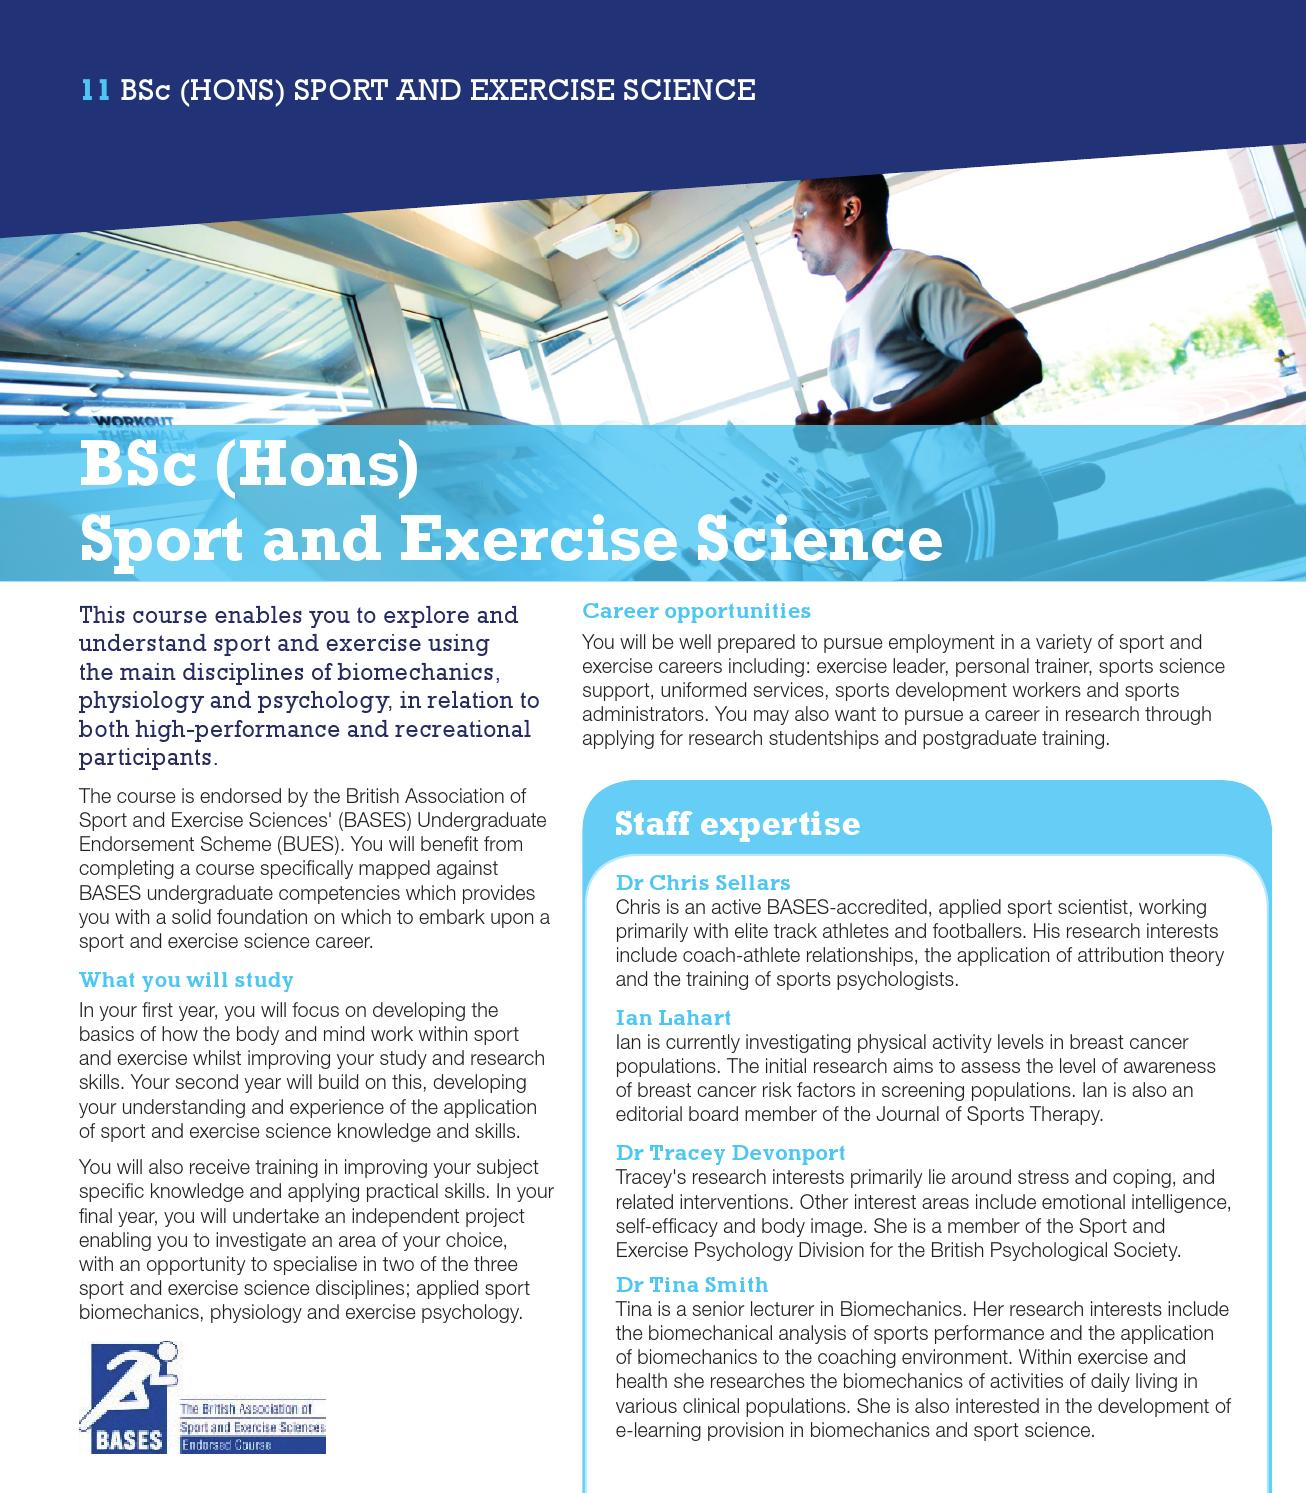 Institute of Sport Guide by University of Wolverhampton - issuu